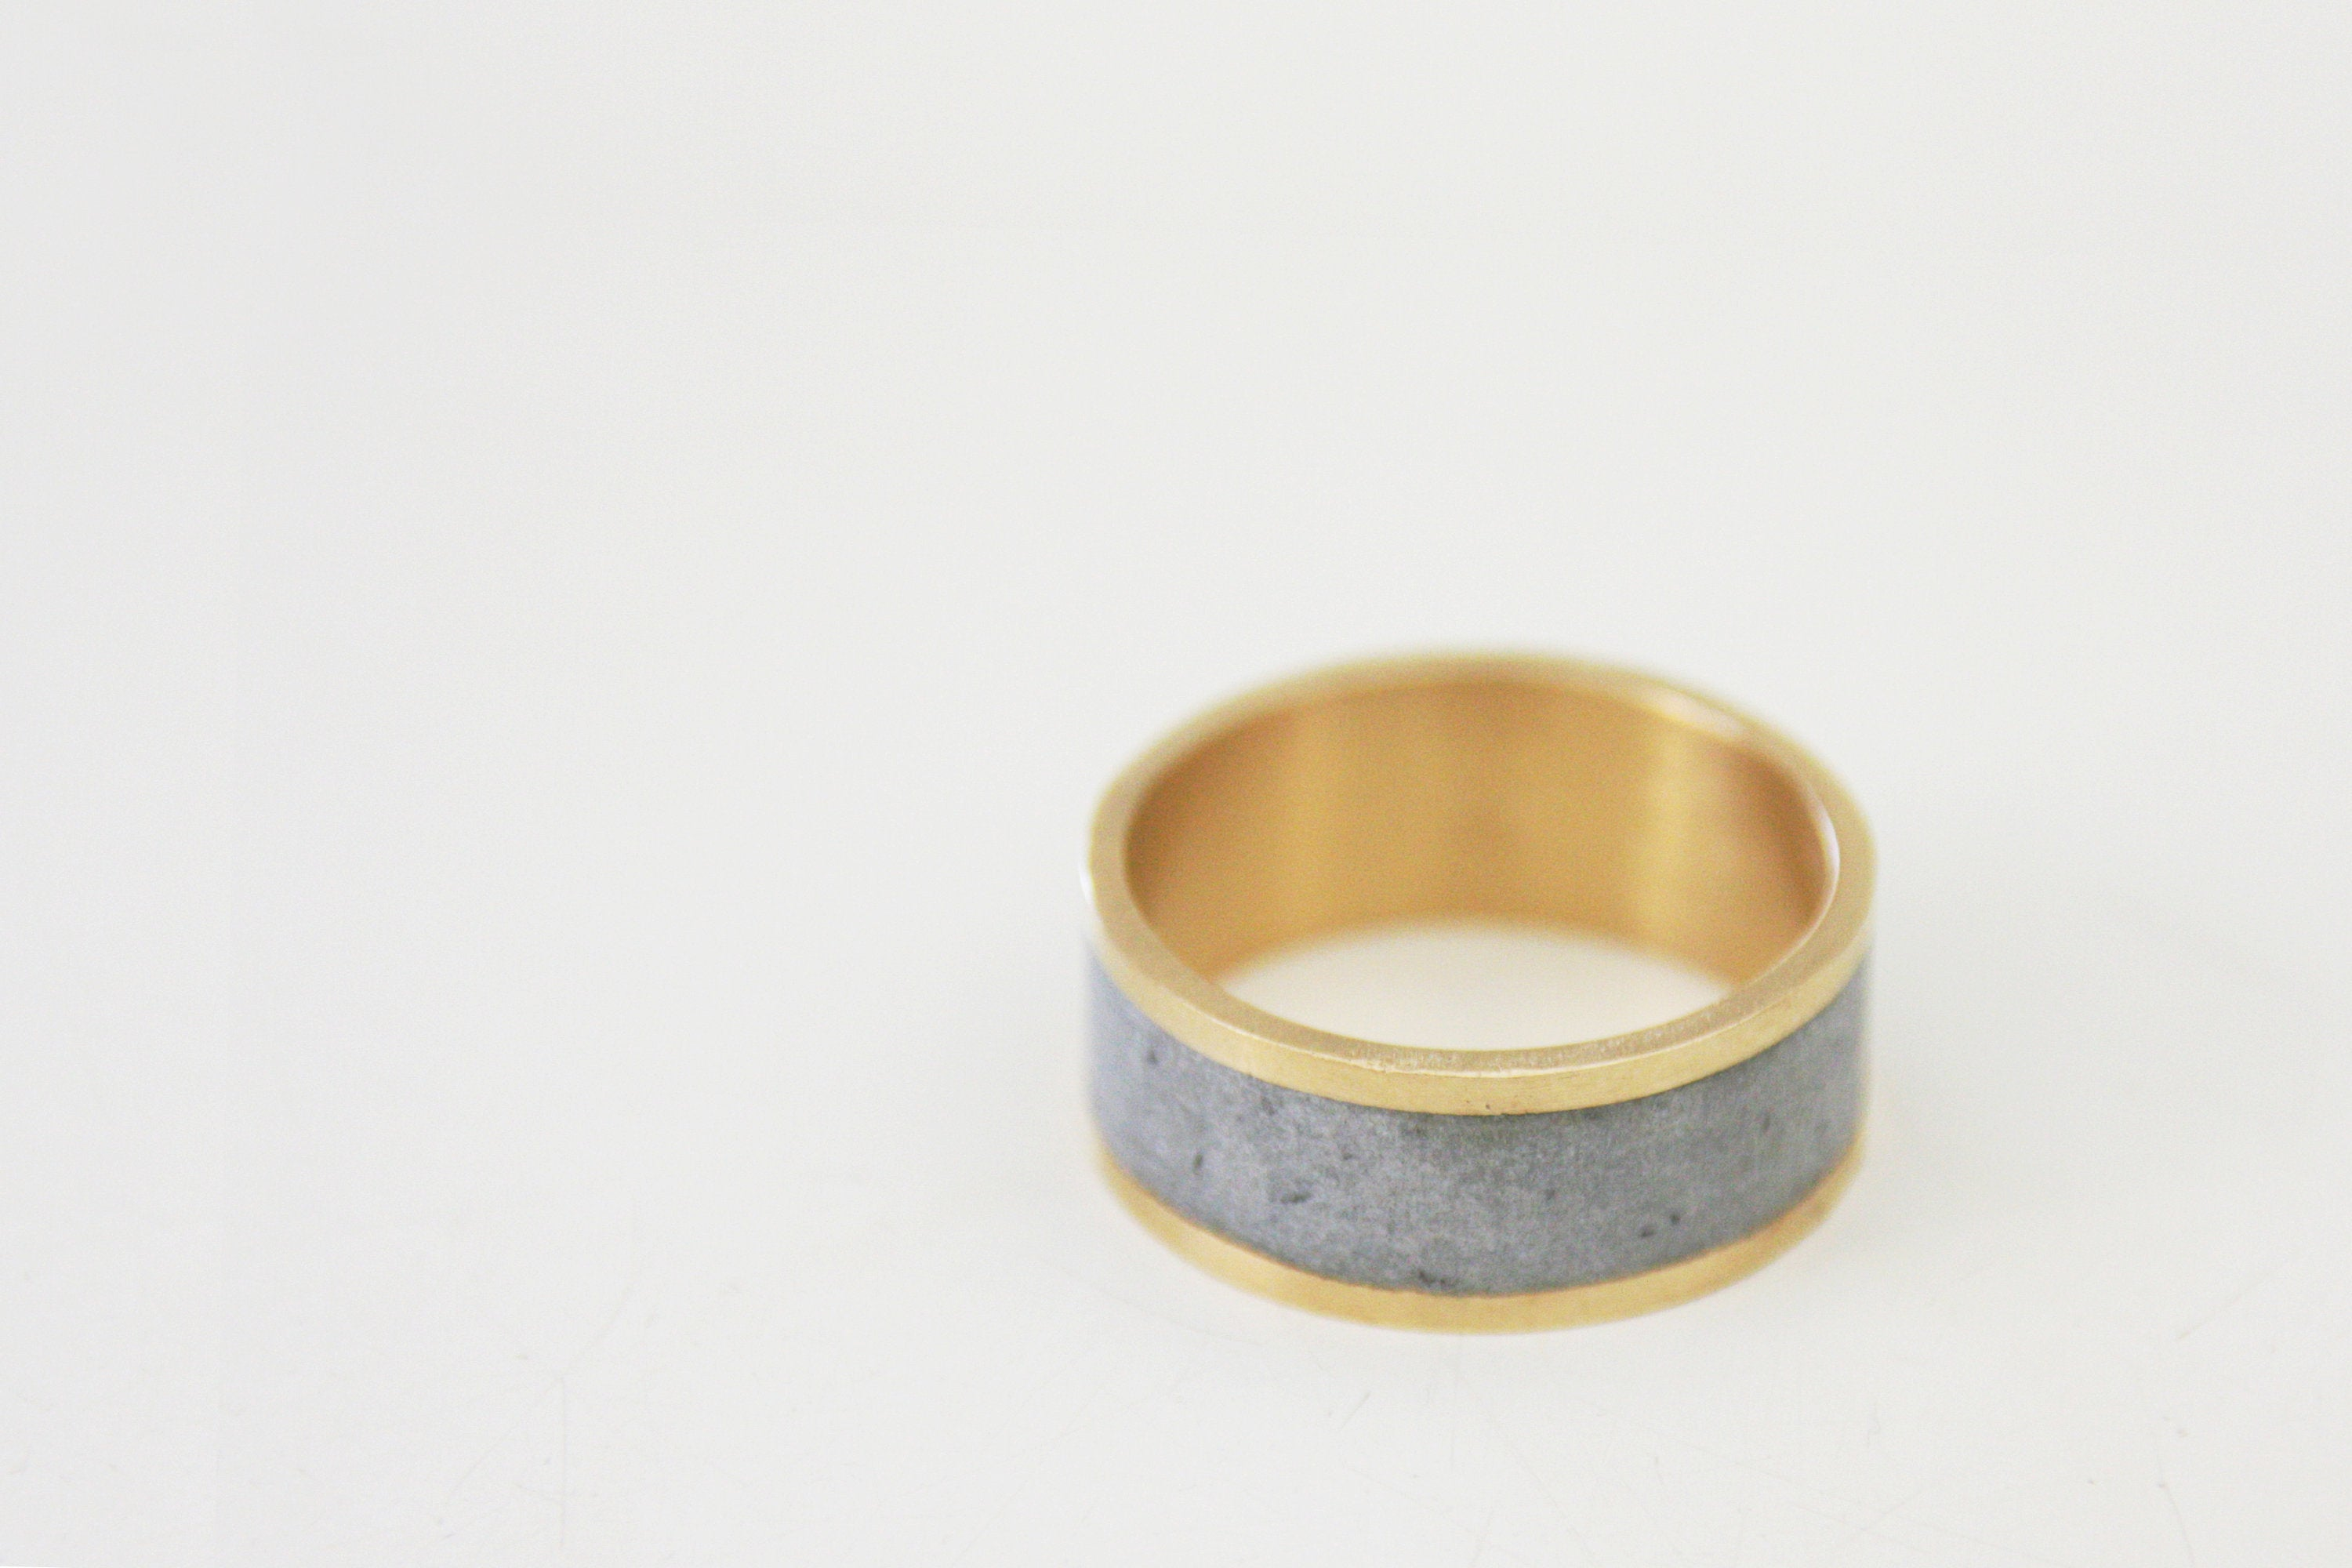 Concrete And Silver Minimalist Wide Wedding Band / Unisex Contemporary 925 Wedding Ring - hs